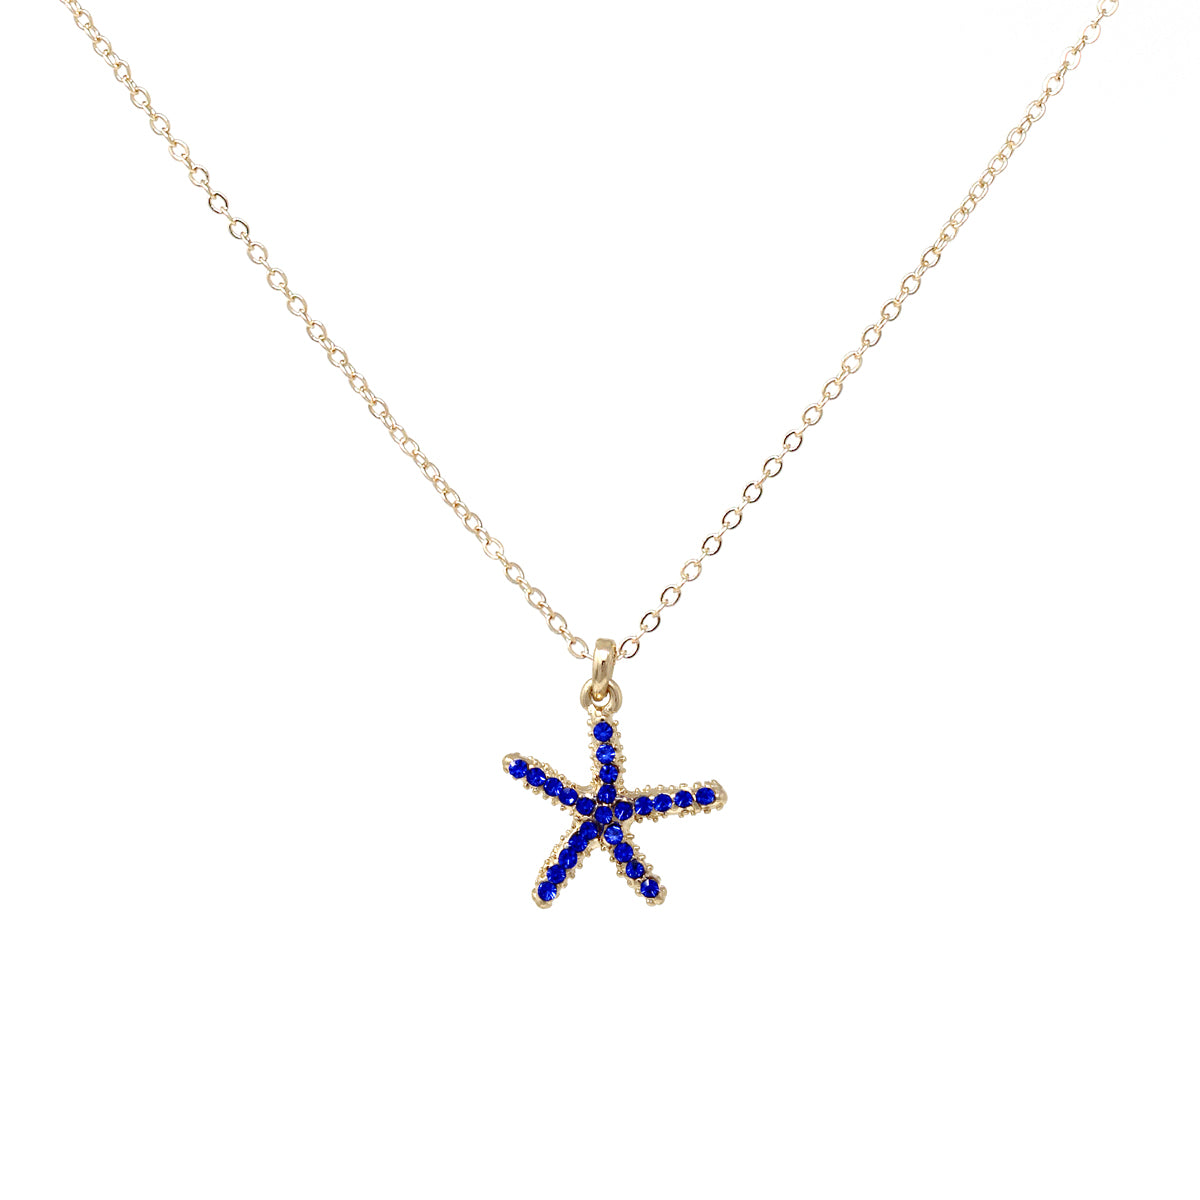 Rhinestone Pave Starfish Pendant Simple Chain Short Necklace